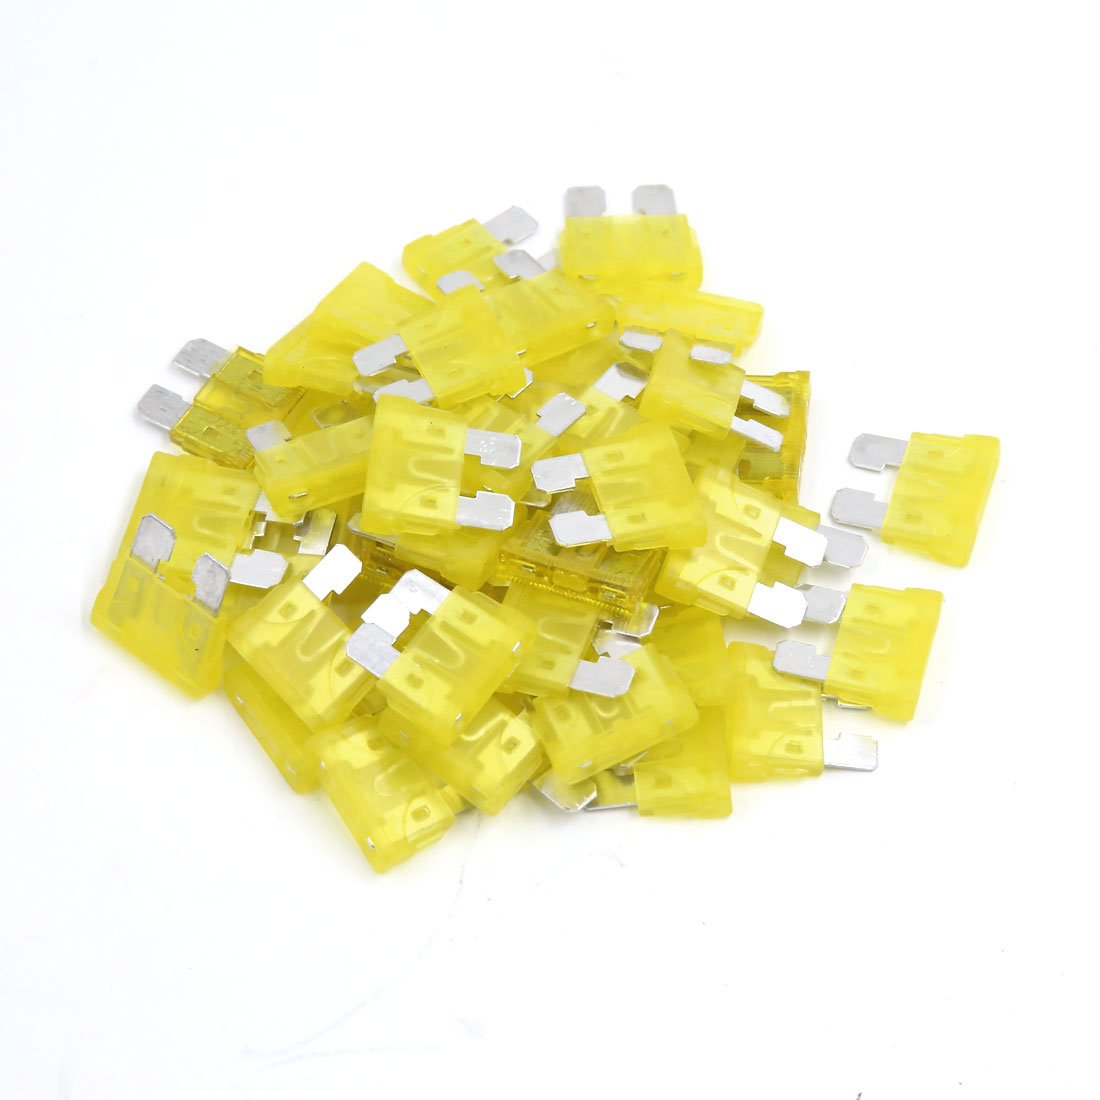 50 Pcs 20A Blade Style Fuse for Motorcycle Motorbike Auto Car